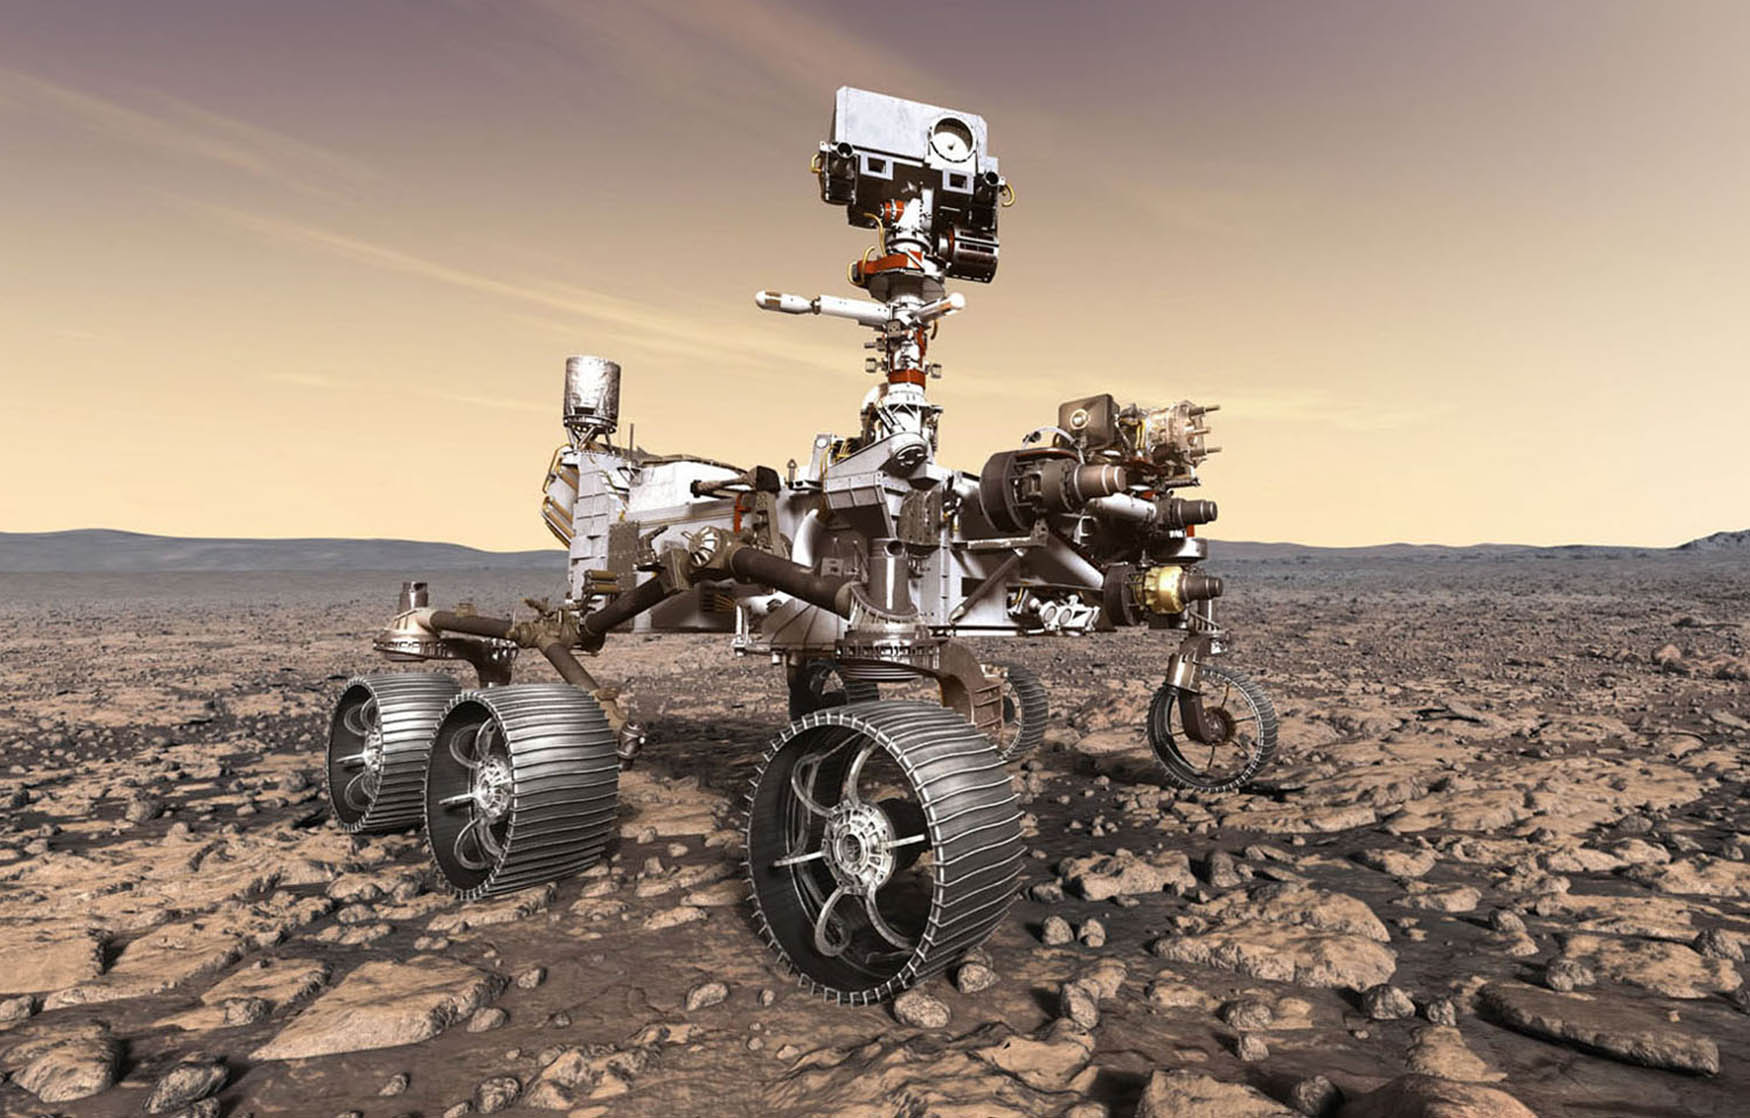 NASA's new Mars rover is hearing vibrations in space